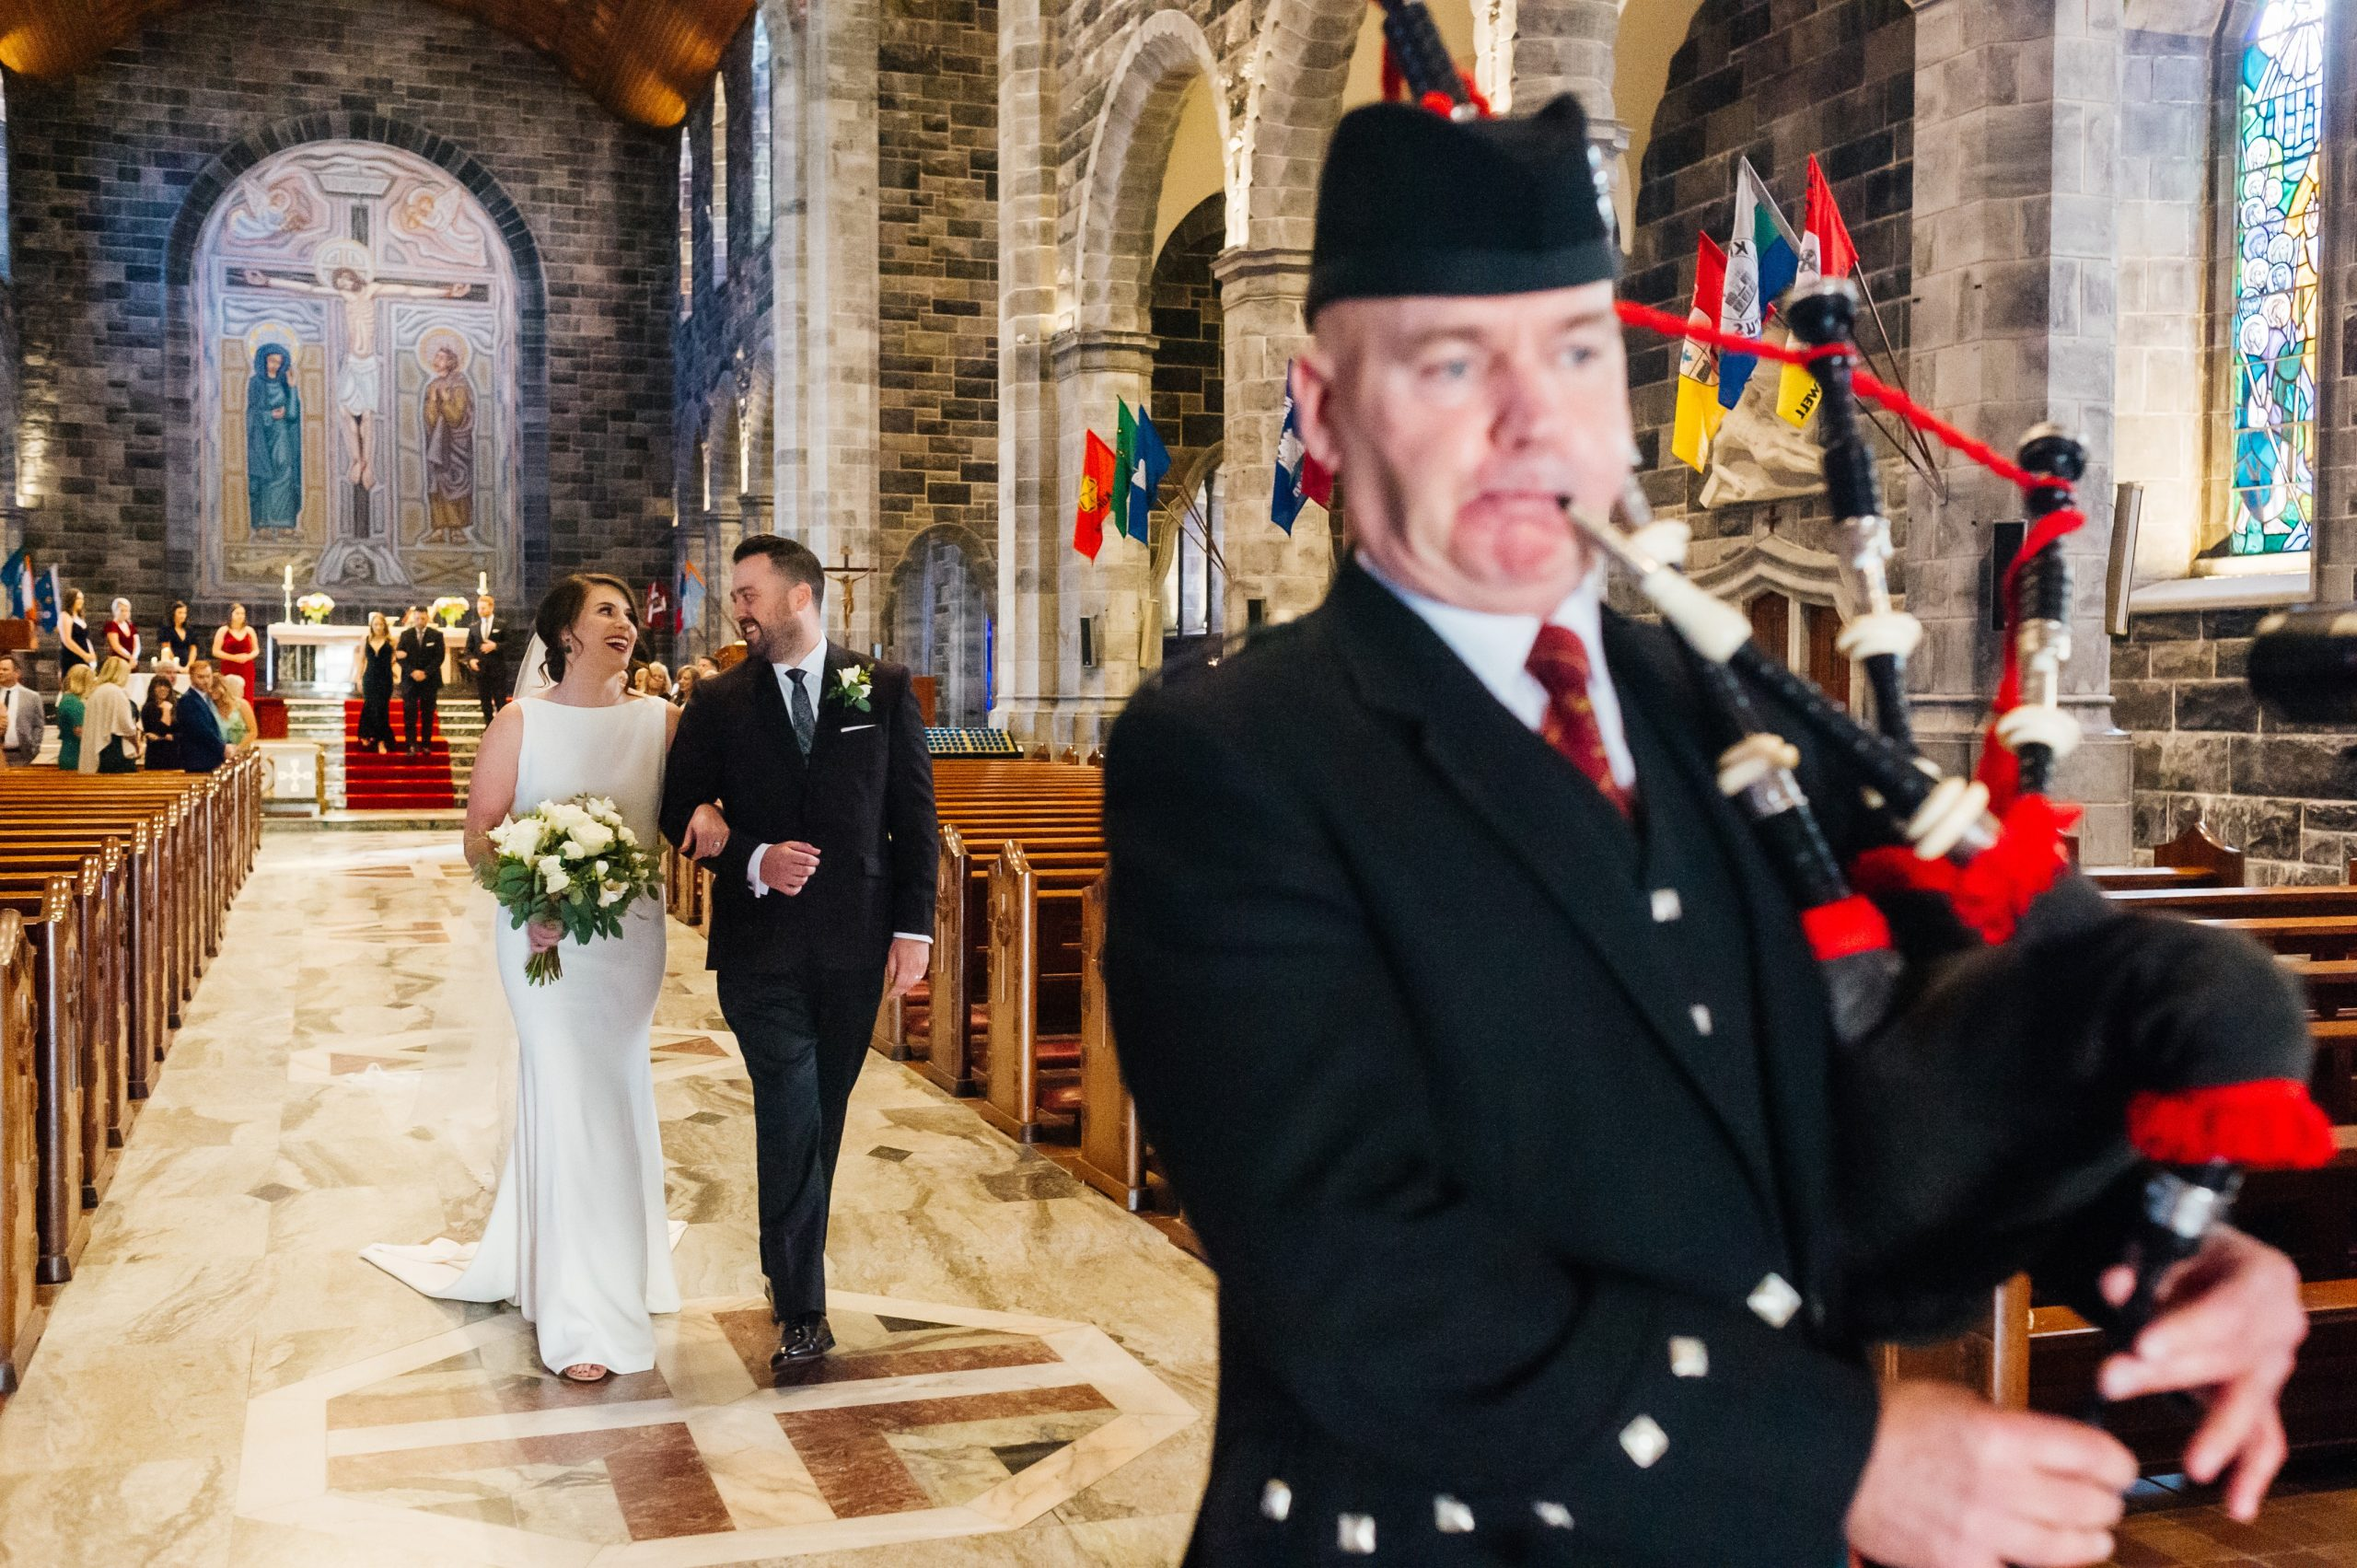 The Bagpiper leading the couple down the aisle